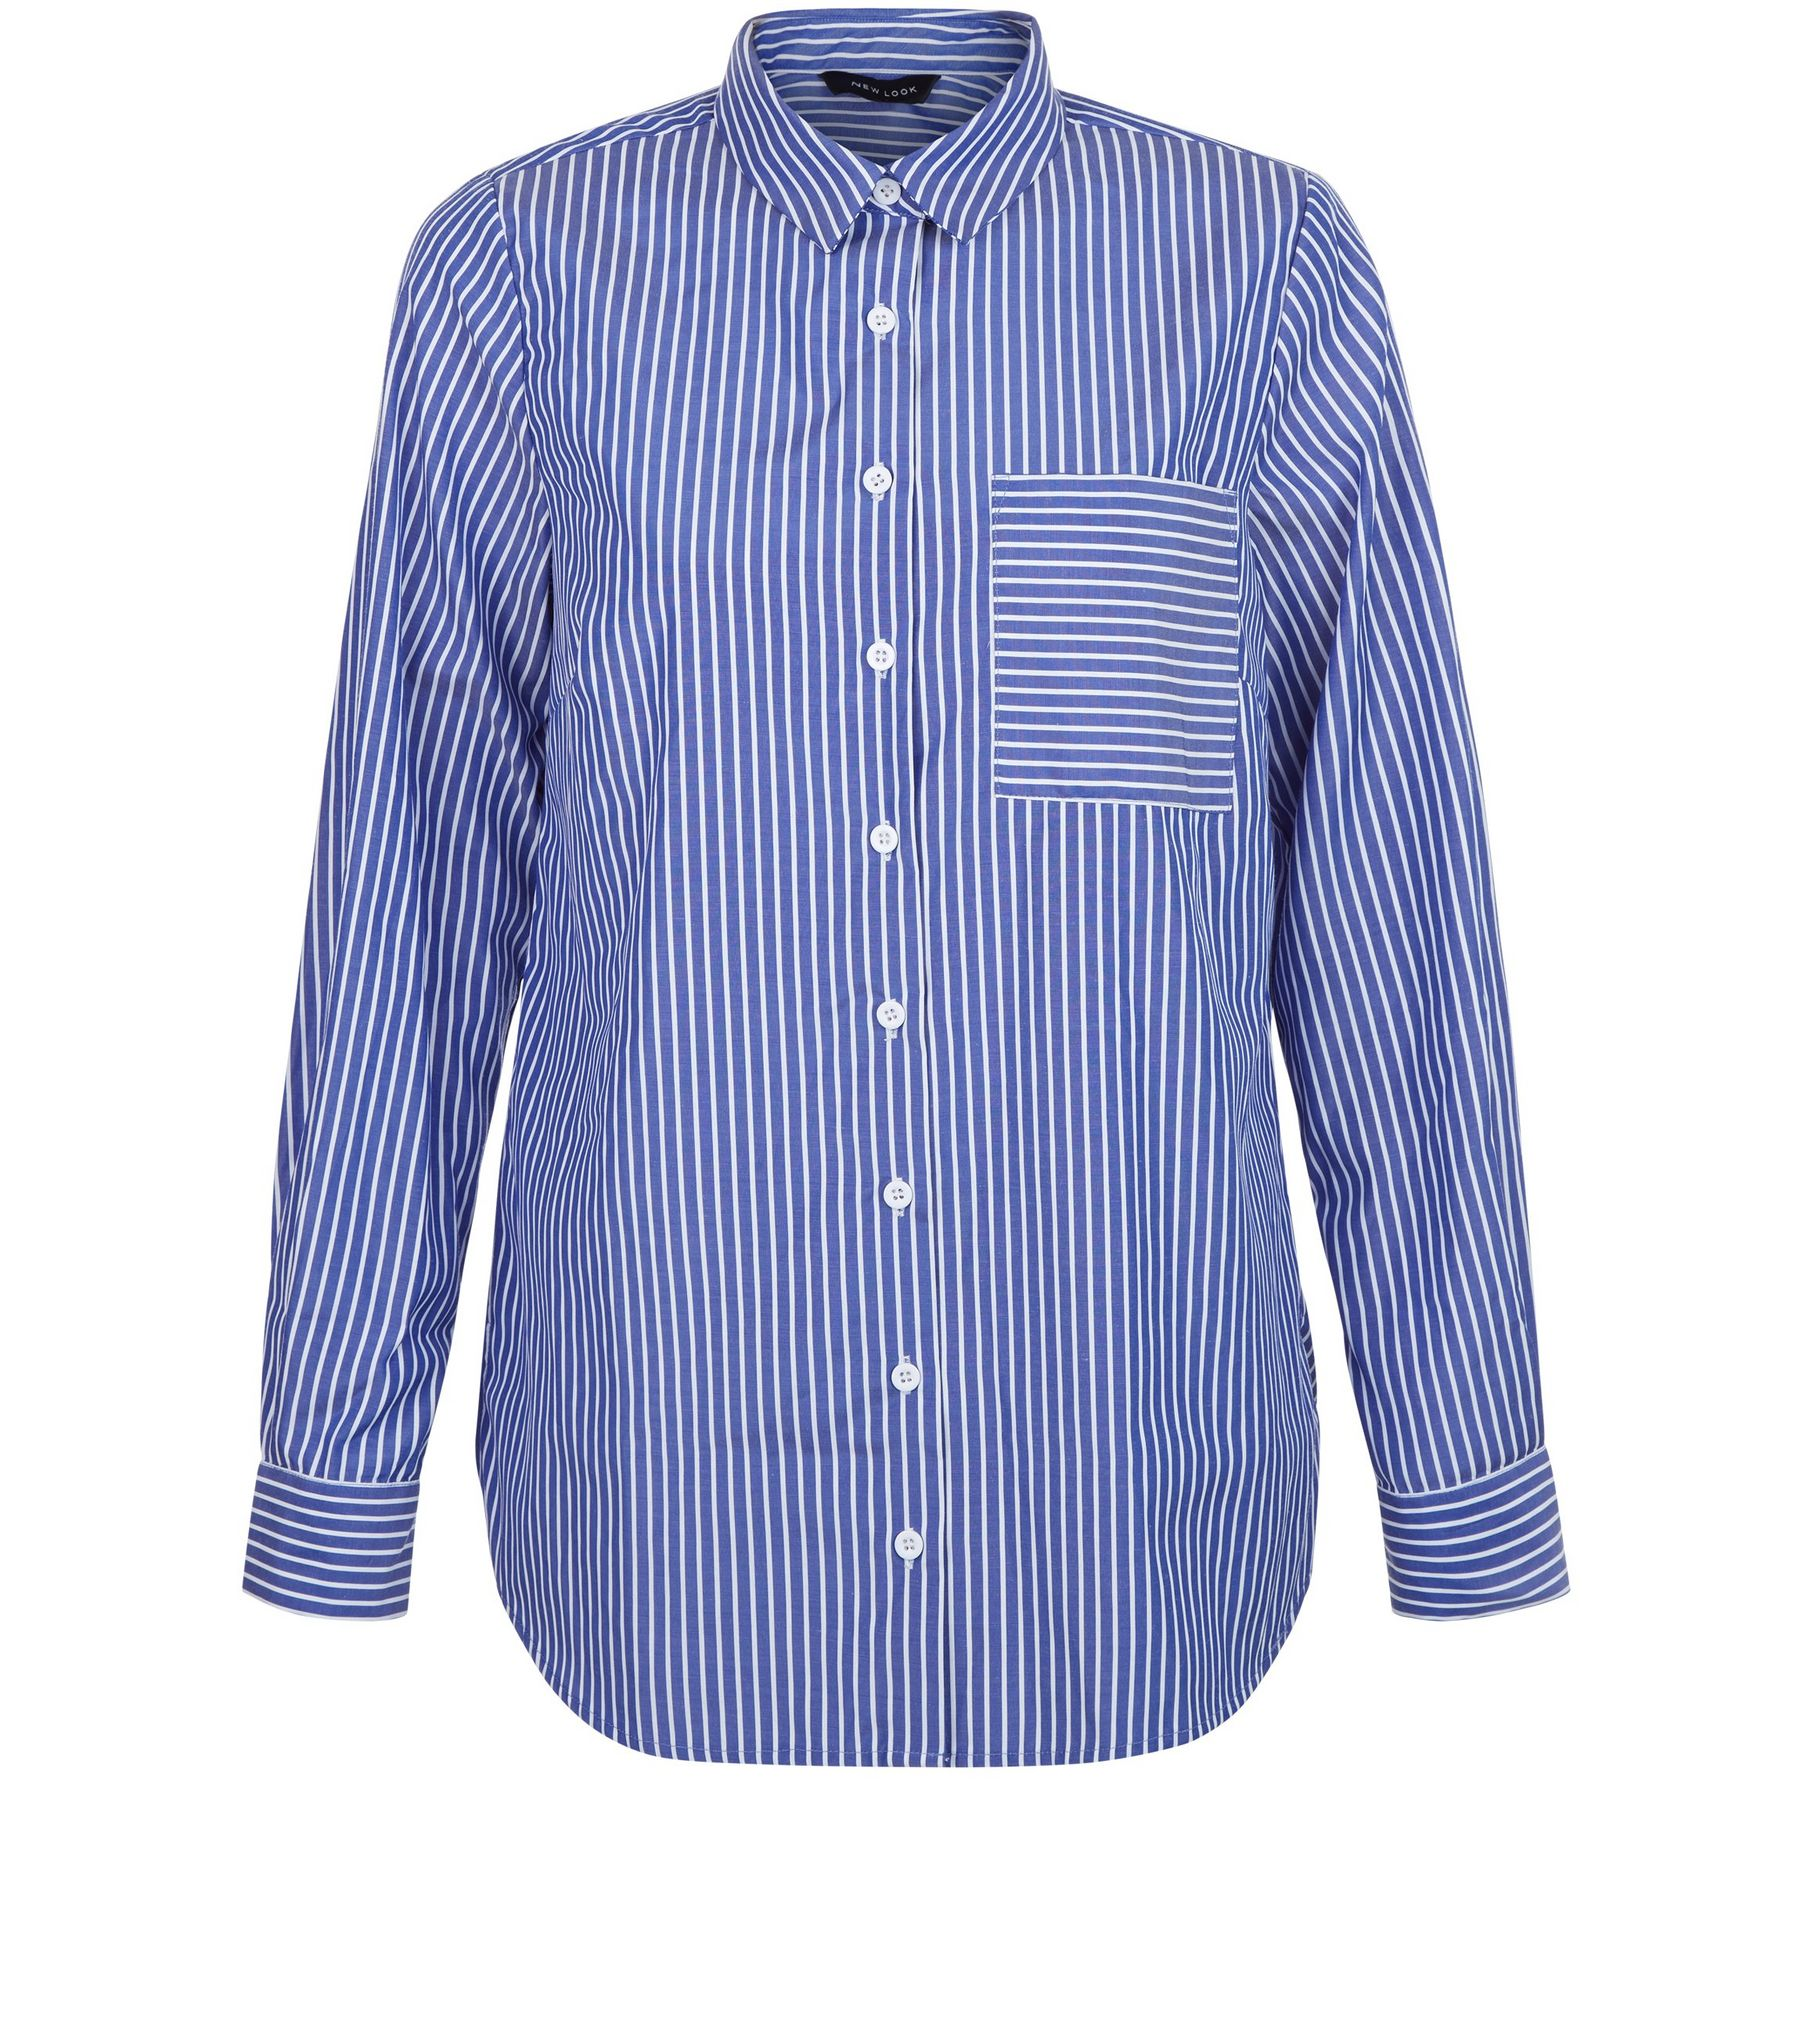 New Look Striped Shirt